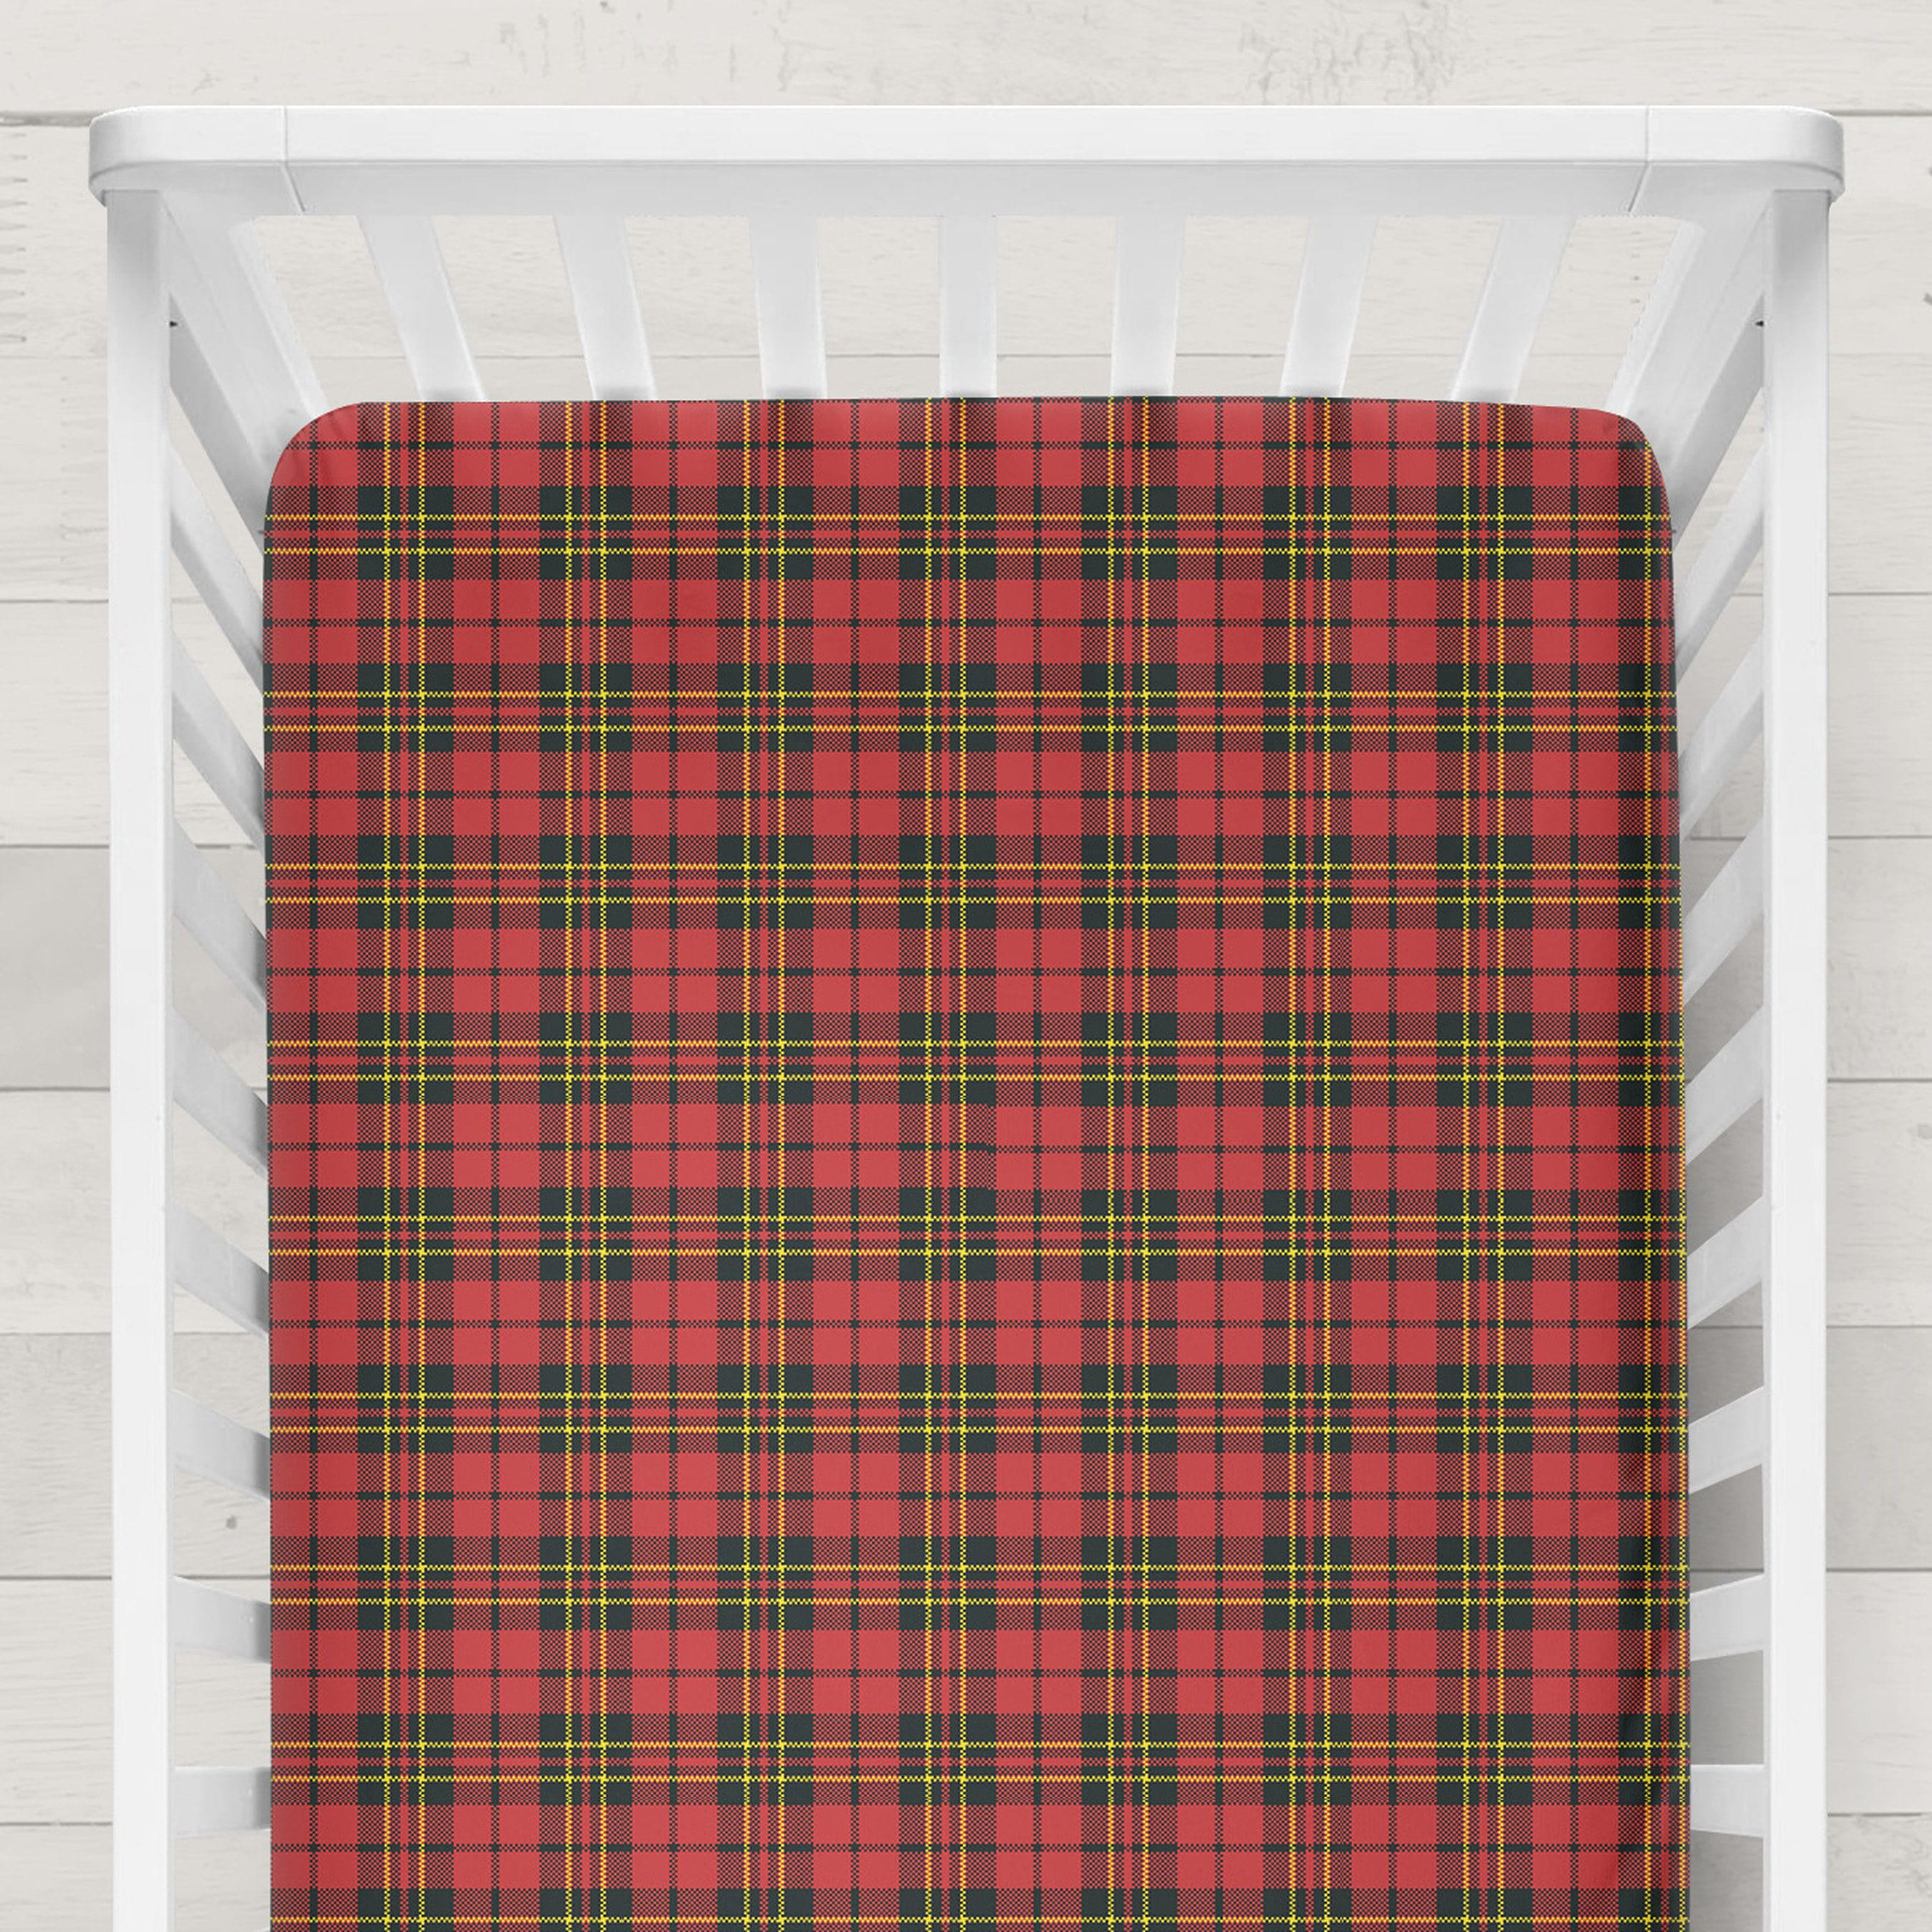 crib cribs bedding decoration set and lambs piece ivy regatta red blue plaid baby white